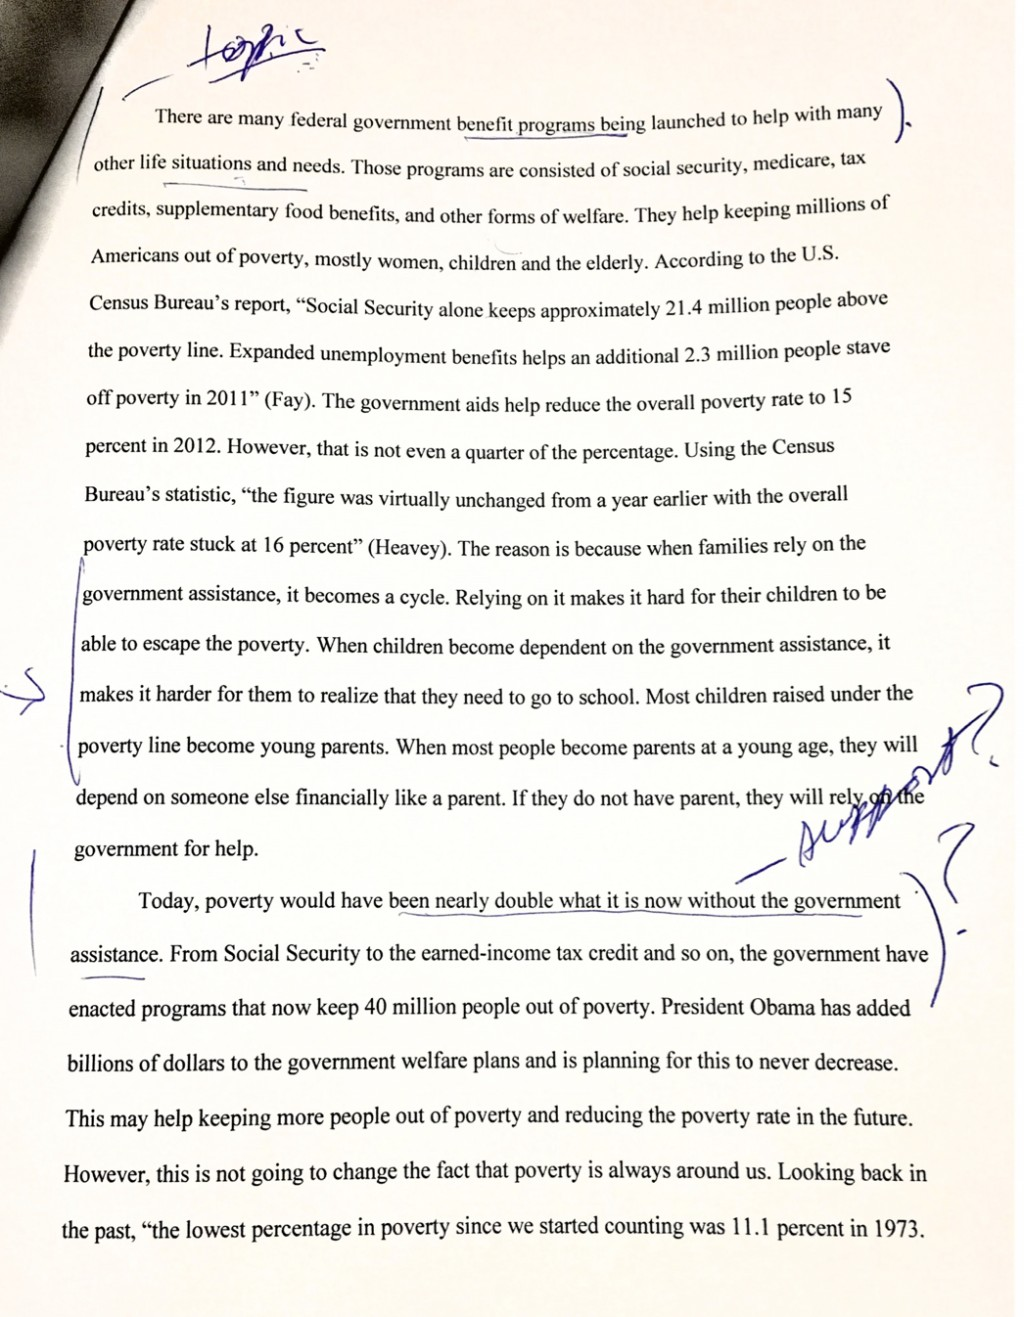 022 Essay Example How To Write Claim For An Argumentative Can Someone Please Help Me Rewrite Or Fix Those Mistakes On My Frightening A Good Rebuttal In Large